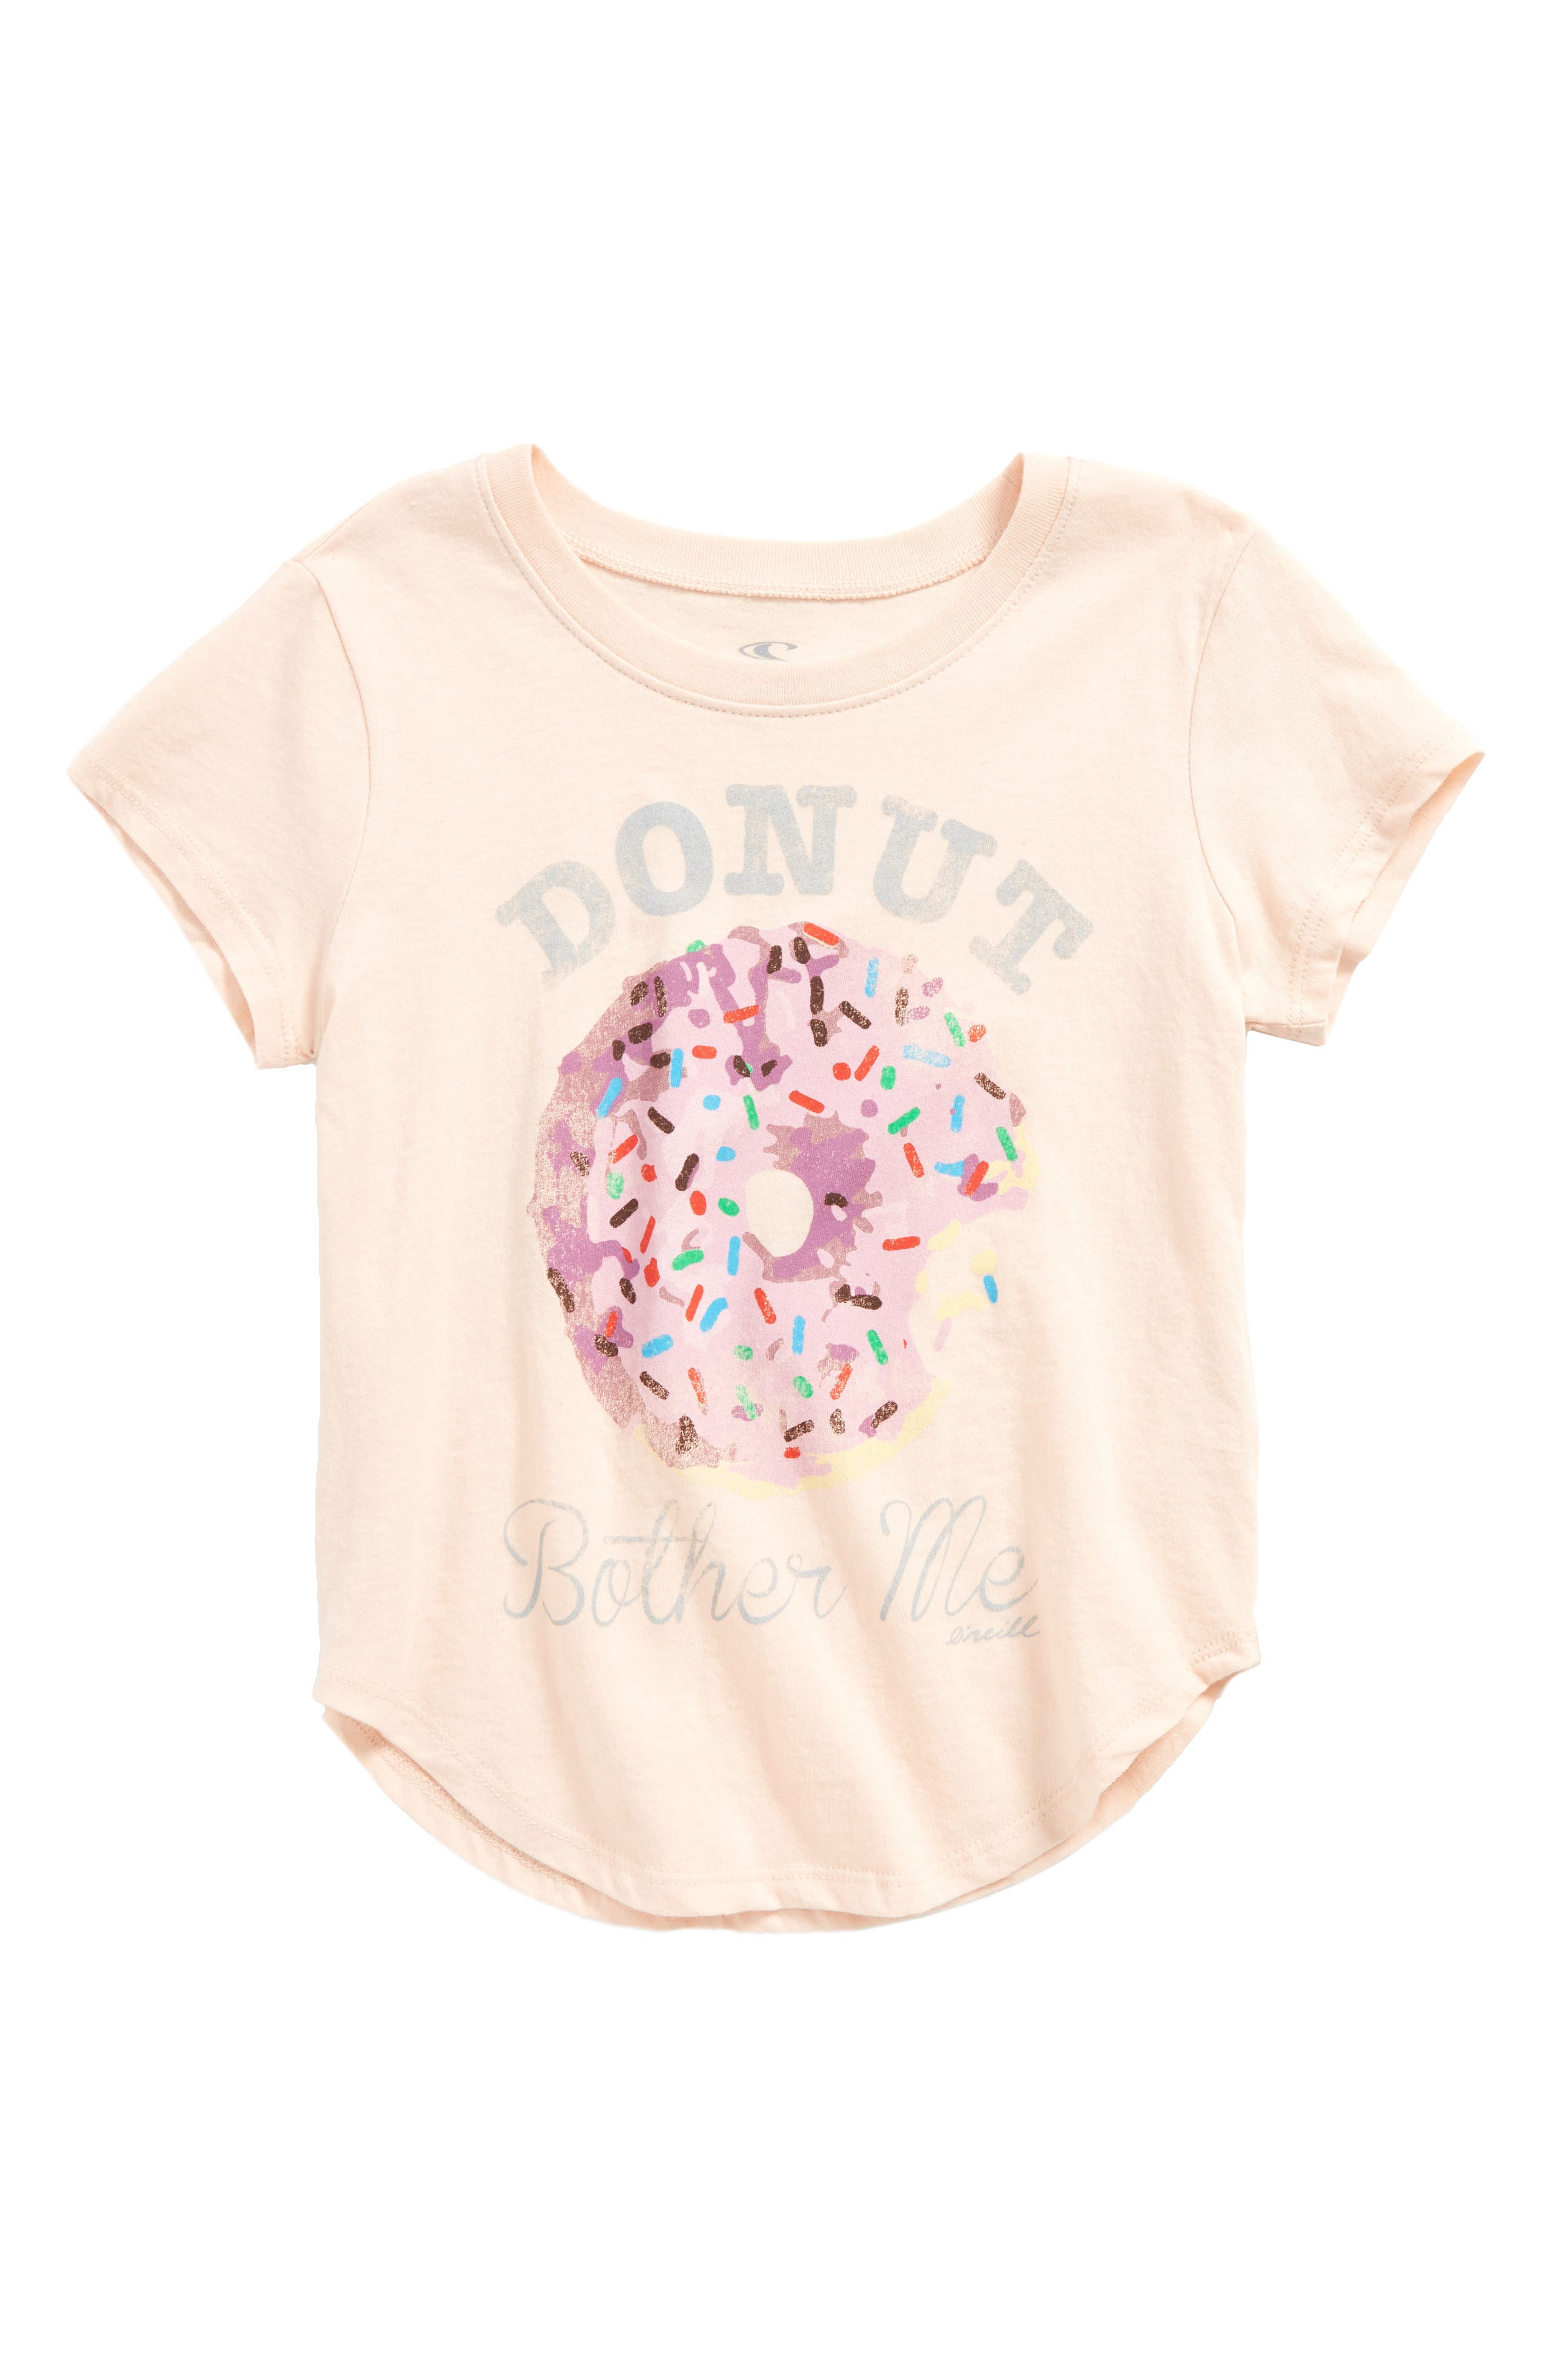 Main Image - O'Neill Donut Bother Me Graphic Tee (Toddler Girls & Little Girls)